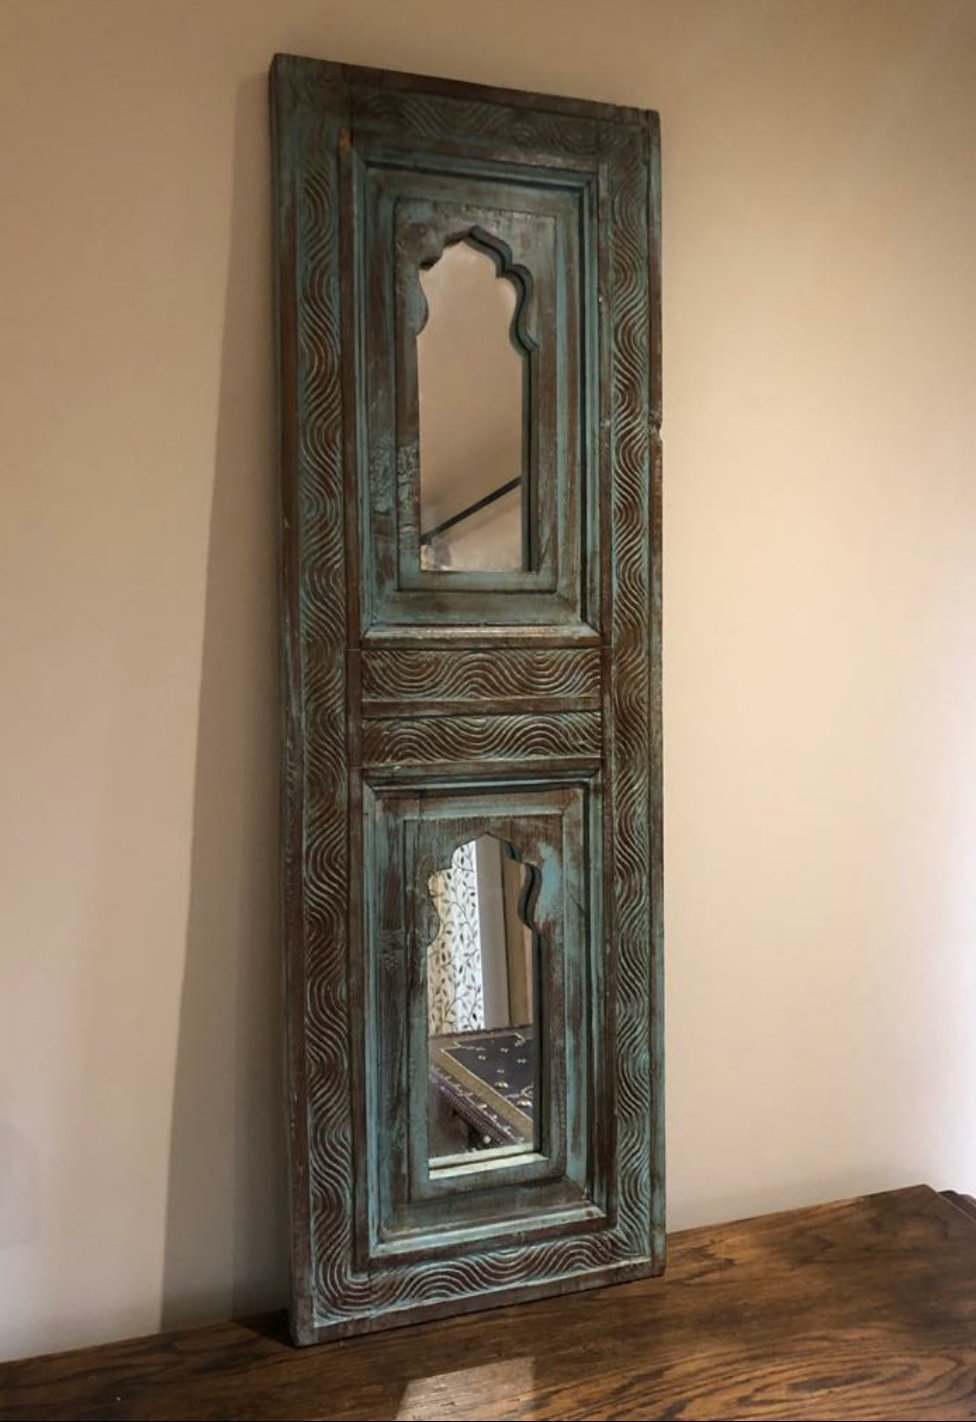 Indian Carved Mirror - The Vintage Look Henely